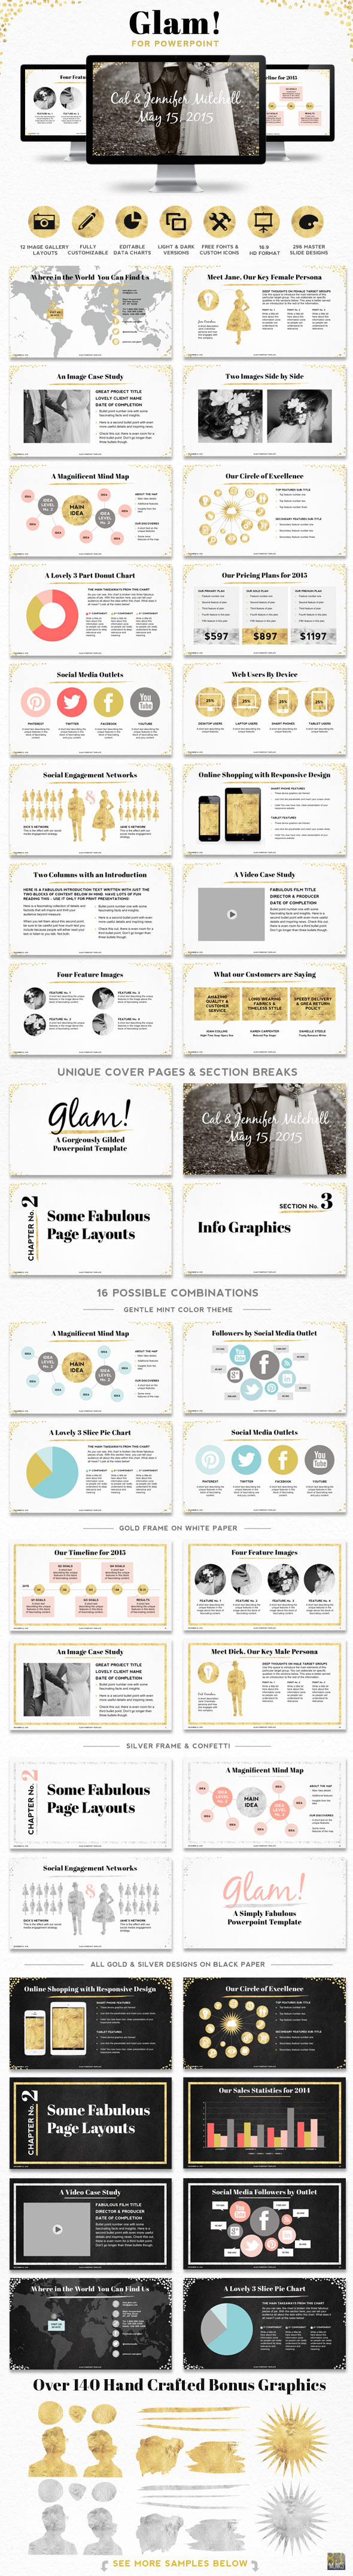 Glam! Powerpoint Presentation Template - Creative PowerPoint Templates